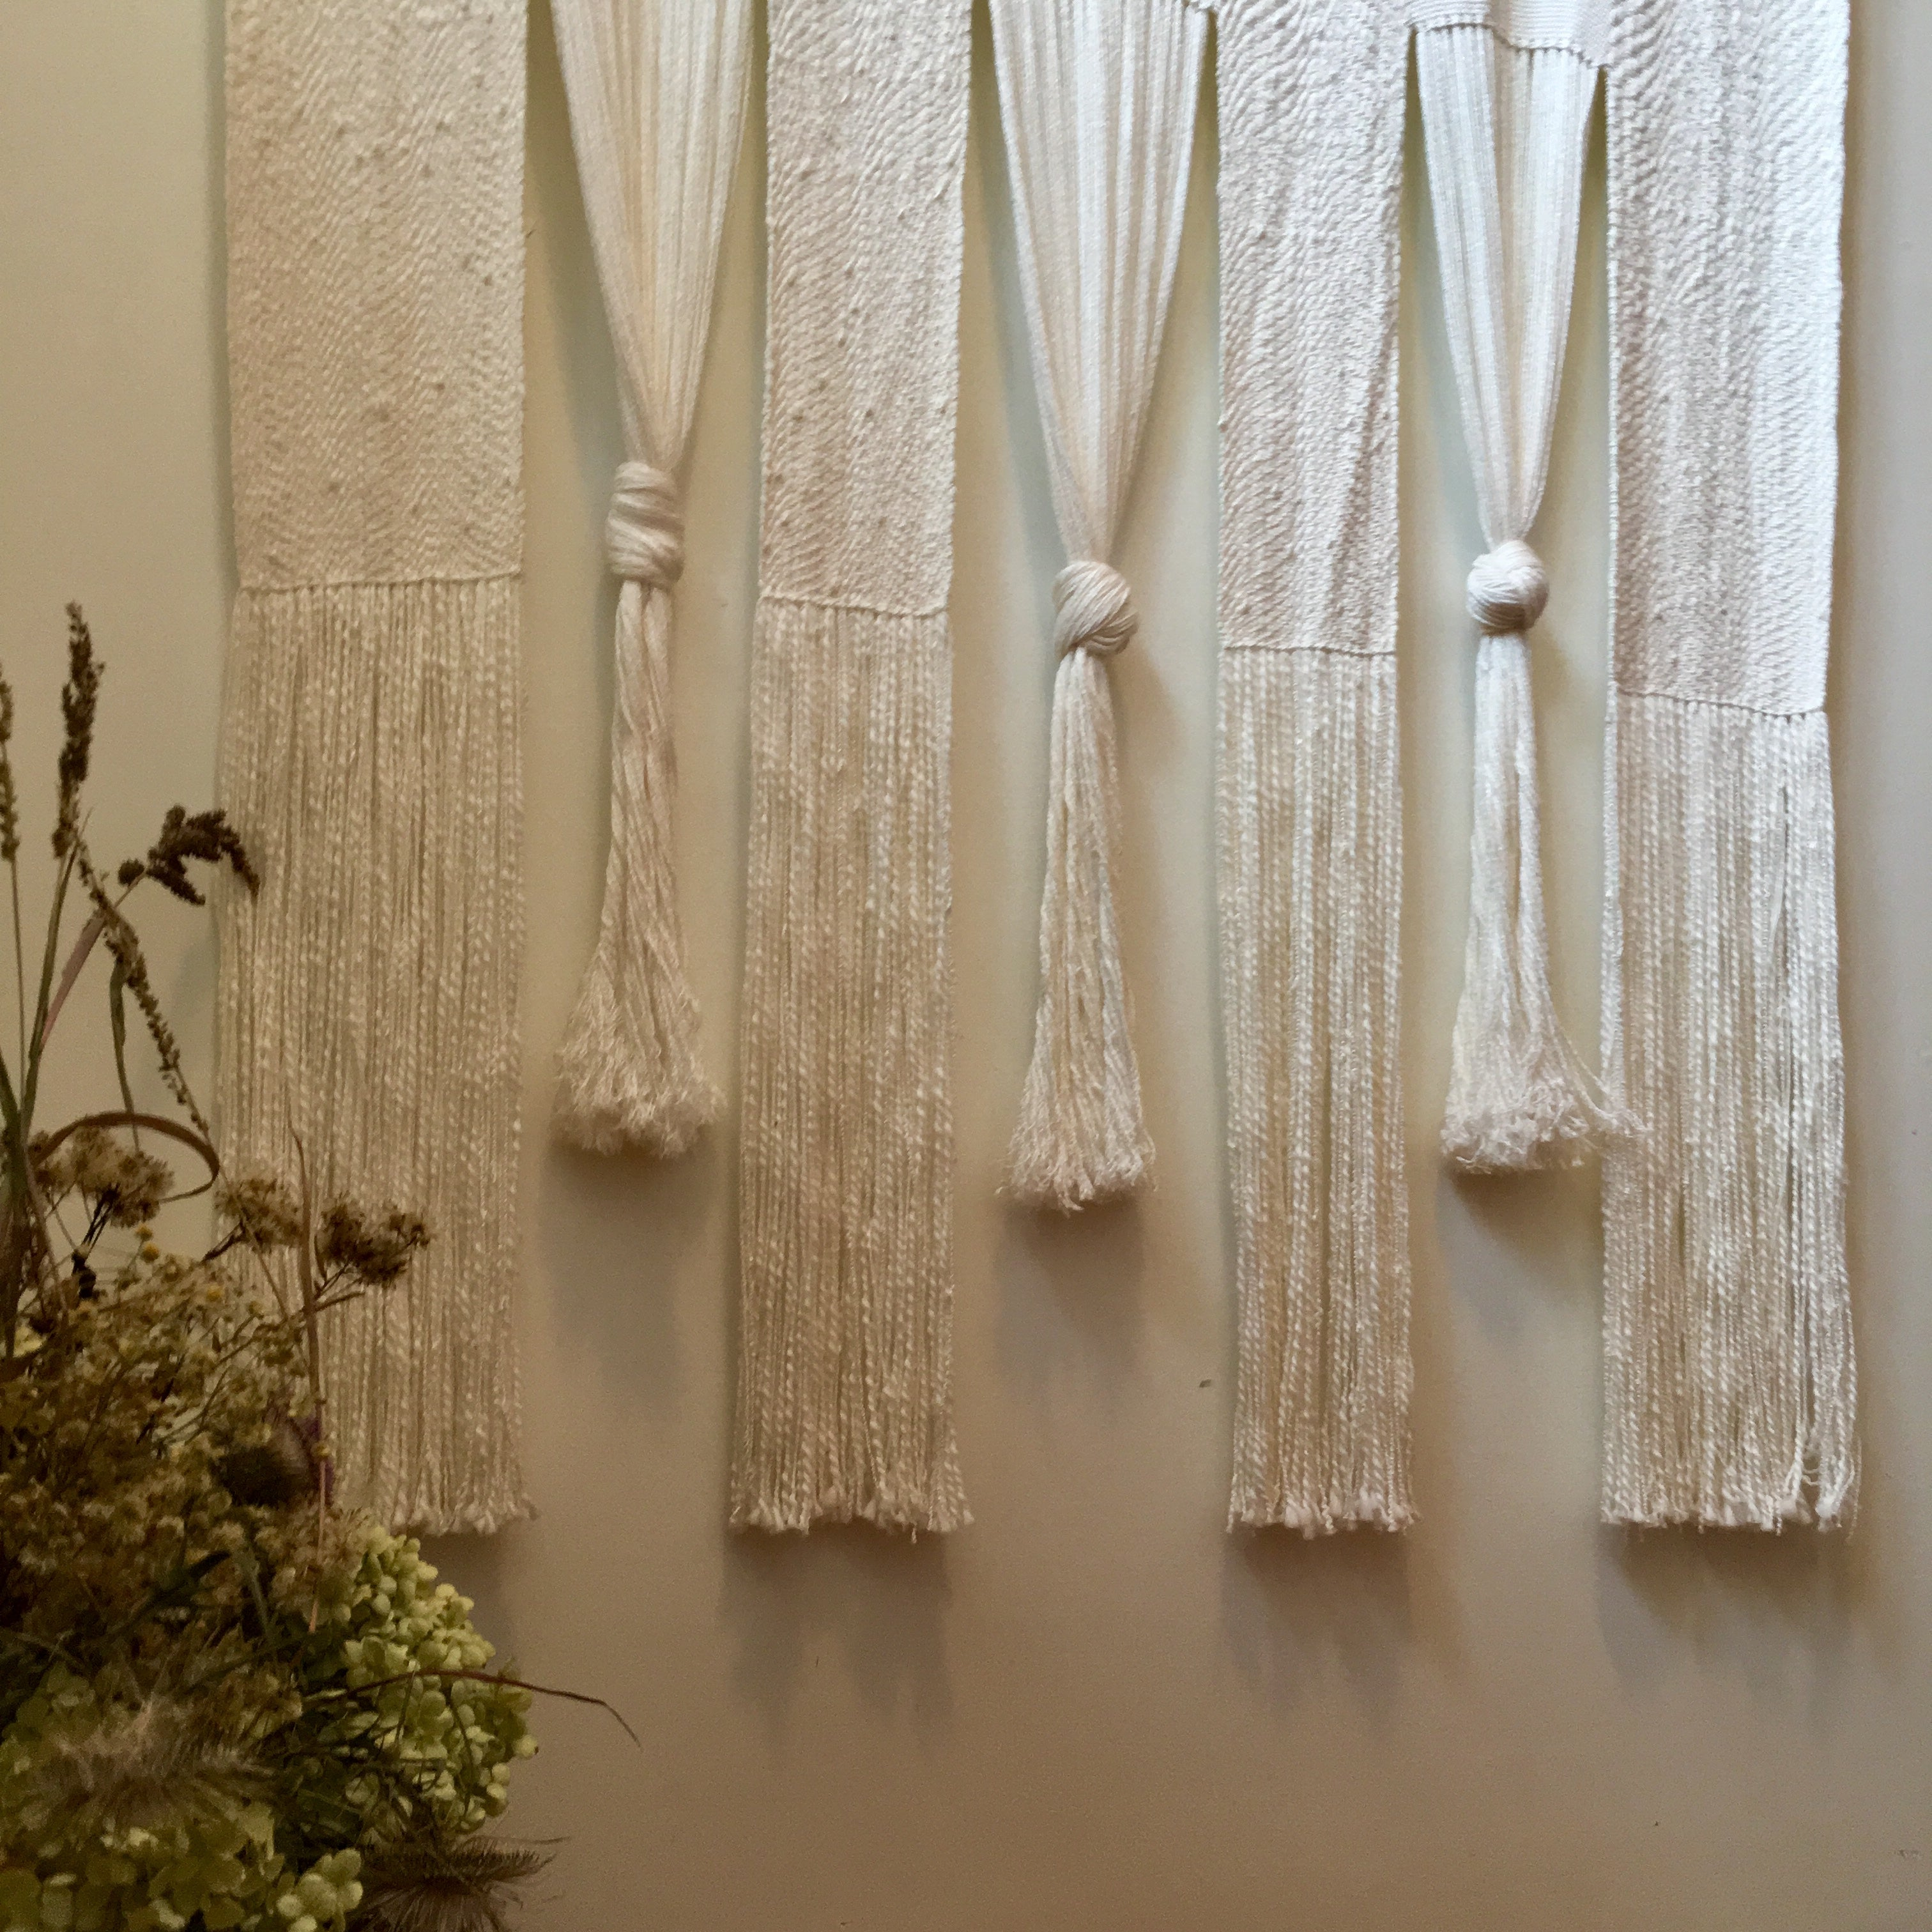 Handwoven Wall Hanging | Grace